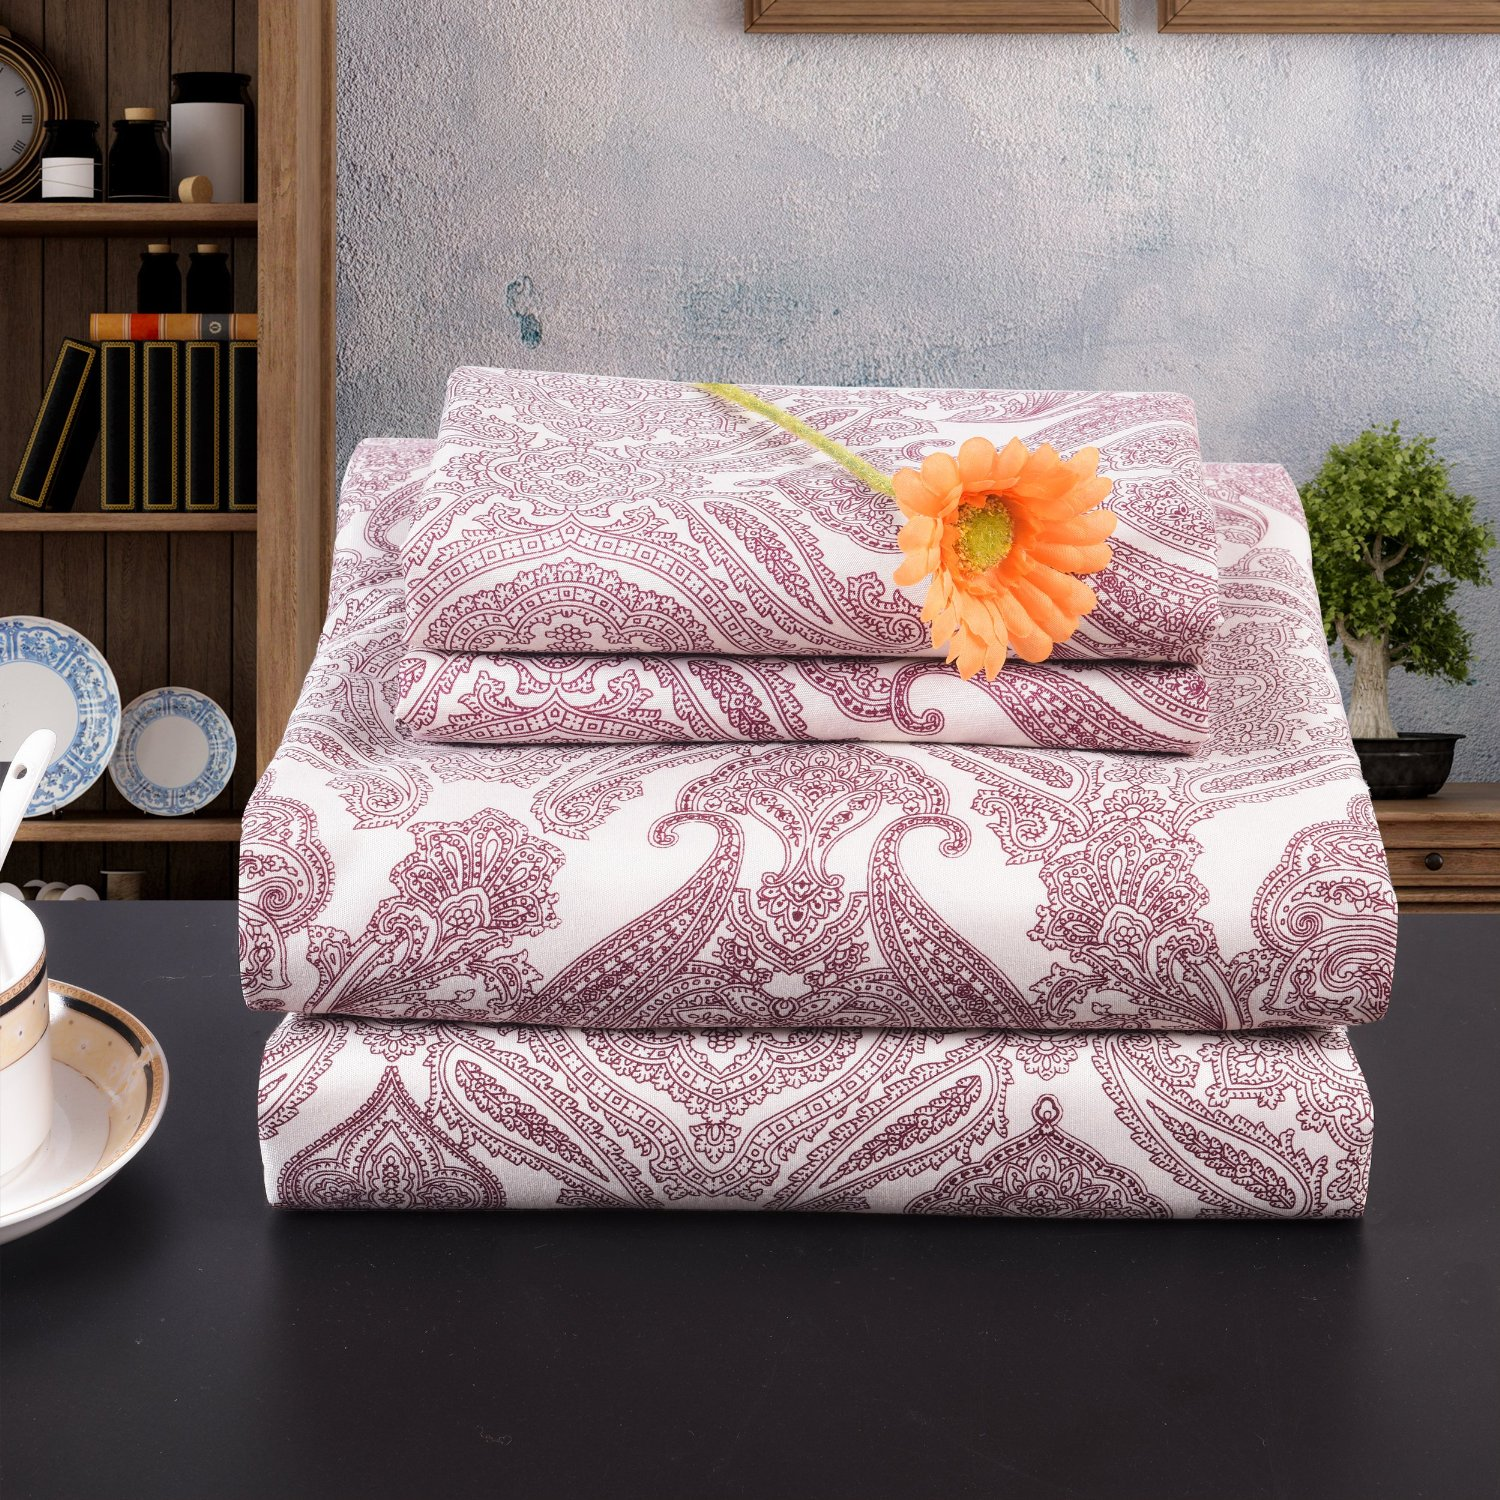 Get Quotations · Lullabi Premium Collection 100% Ultra Soft, Double Side  Brushed Finish, Microfiber Bed